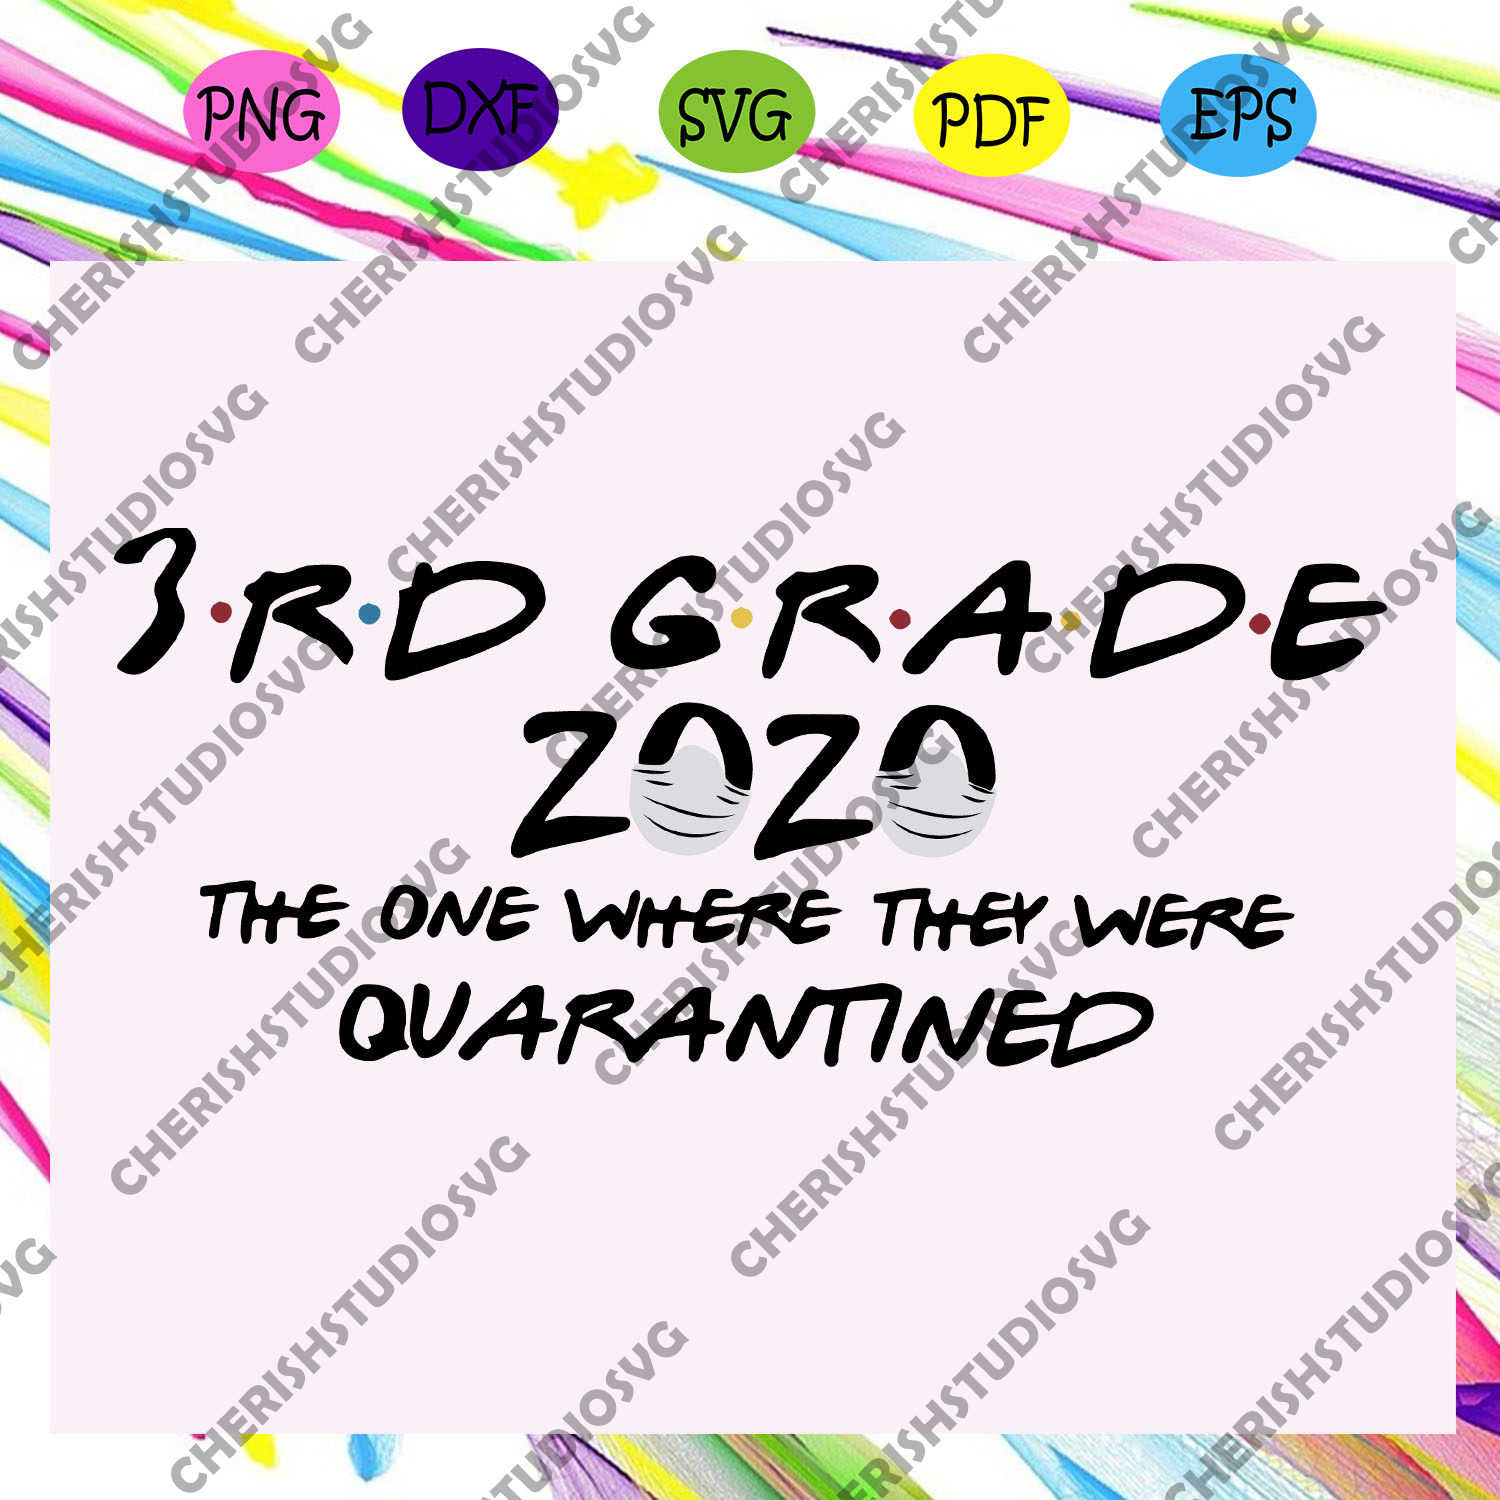 3rd grade 2020 the one where they were quarantined, 3rd grade 2020 svg, quarantine svg, social distance svg, teacher svg, 3rd grade quarantined student, quarantined teacher, Files For Silhouette, Files For Cricut, SVG, DXF, EPS, PNG